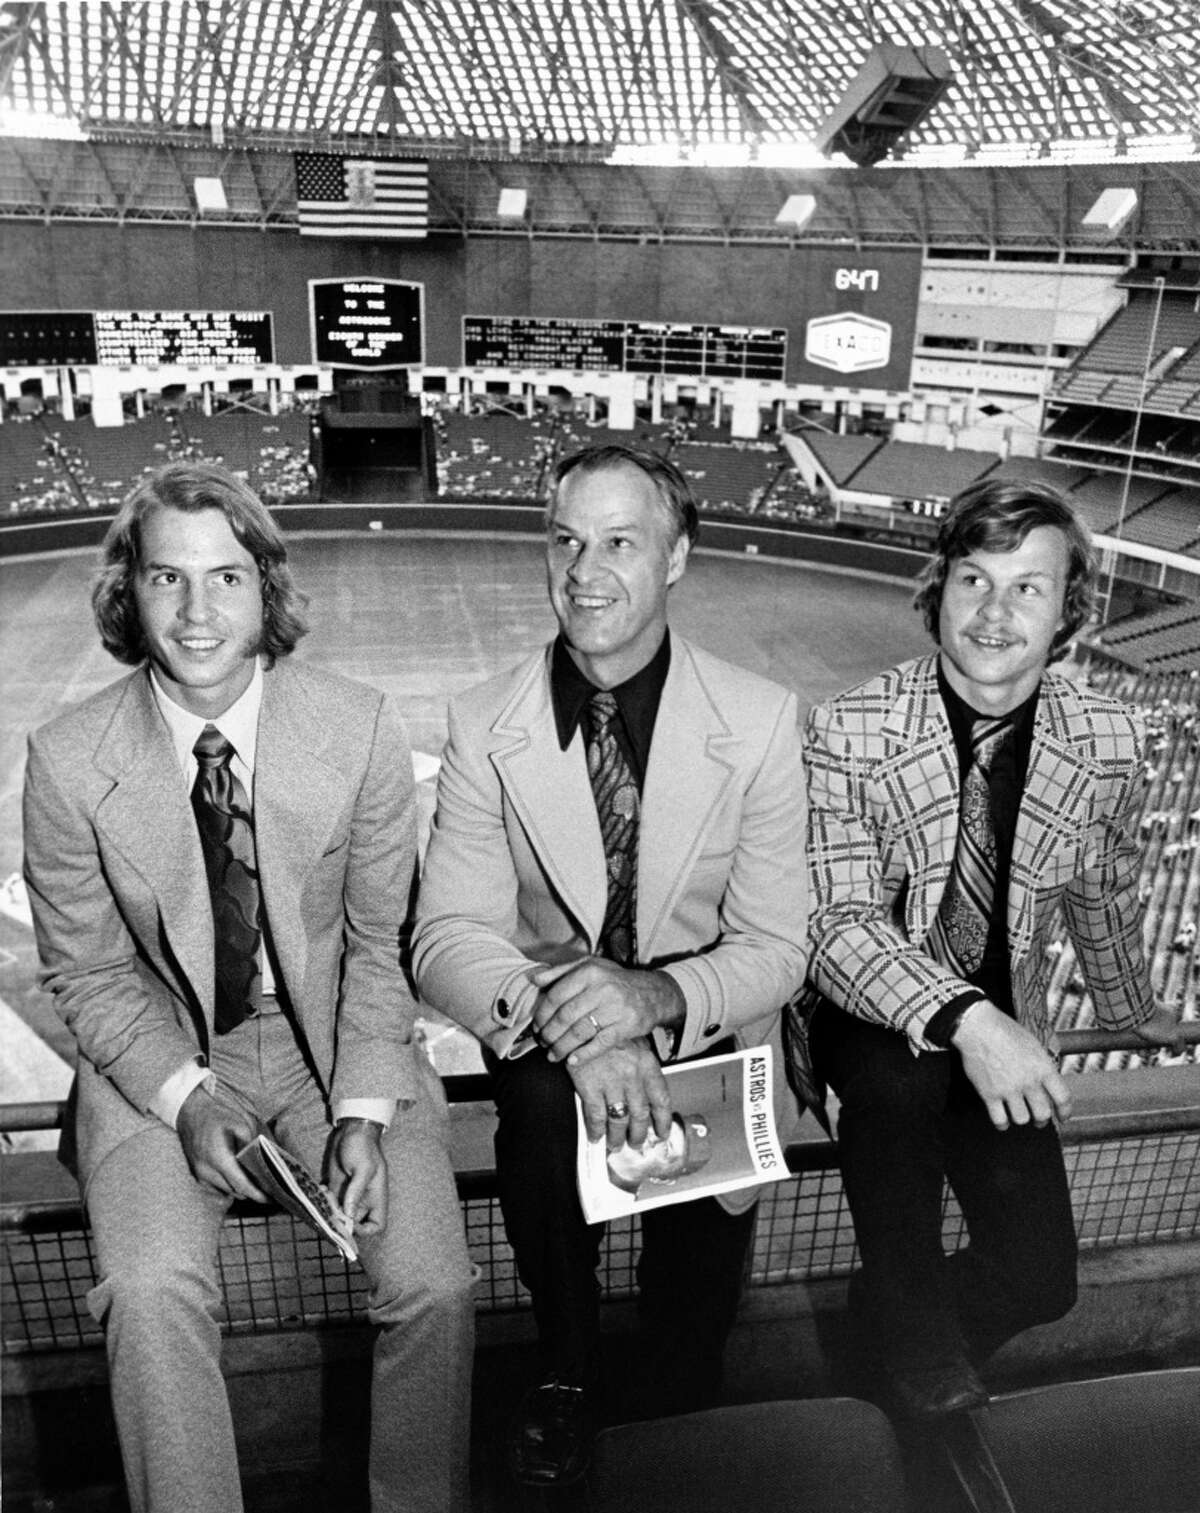 06/04/1973 - Gordie Howe (Mr. Hockey) and his sons, Marty, left, and Mark, right, take a look at the Astrodome before the Astros-Phillies game. All three Howes have contracted to play for the Houston Aeros in the newly formed World Hockey Association (WHA).